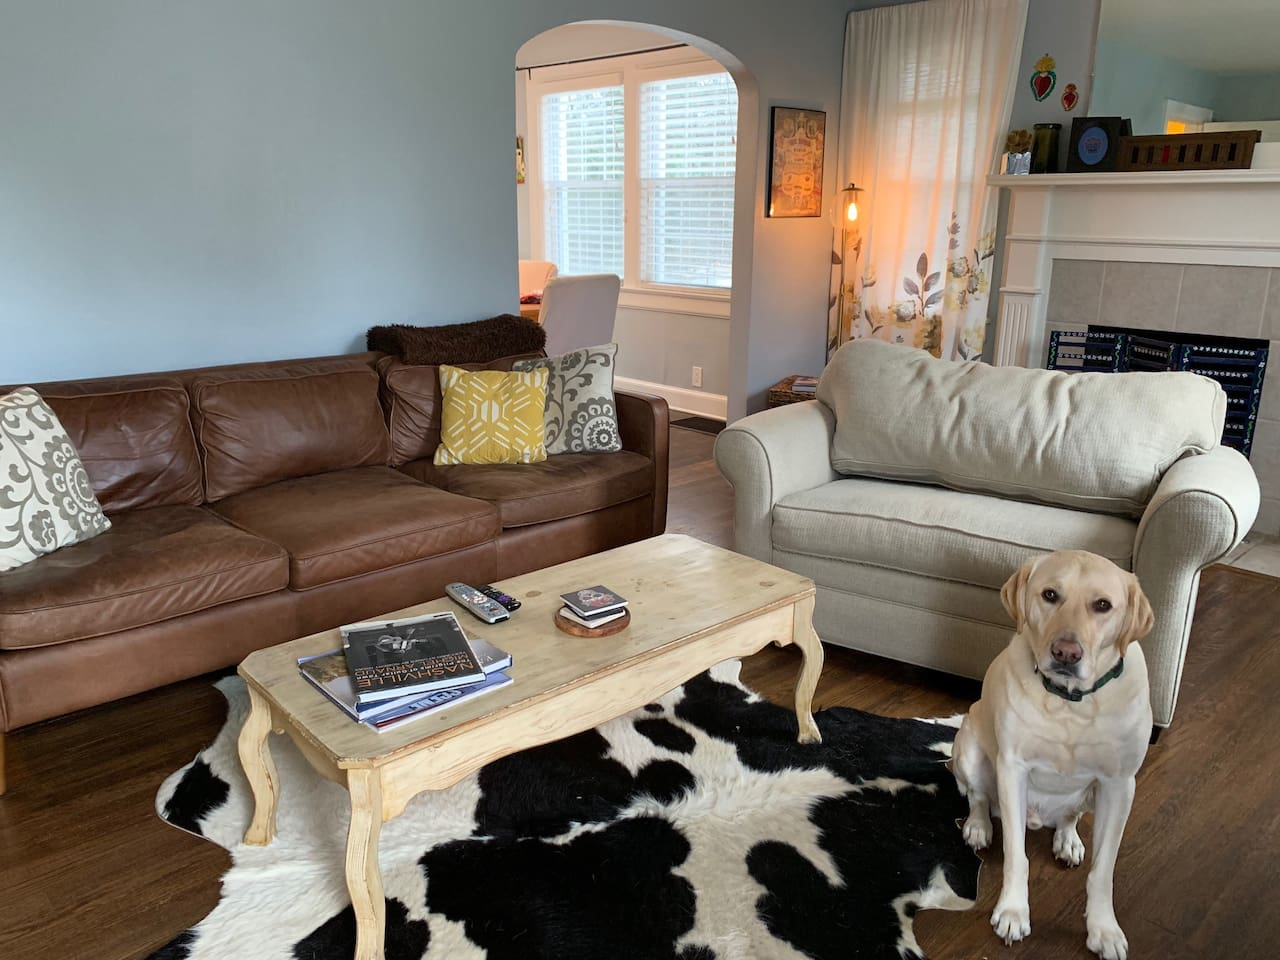 My newly remodeled living room that we will share...including my puppy who thinks every time I take pictures, the he needs to pose :)